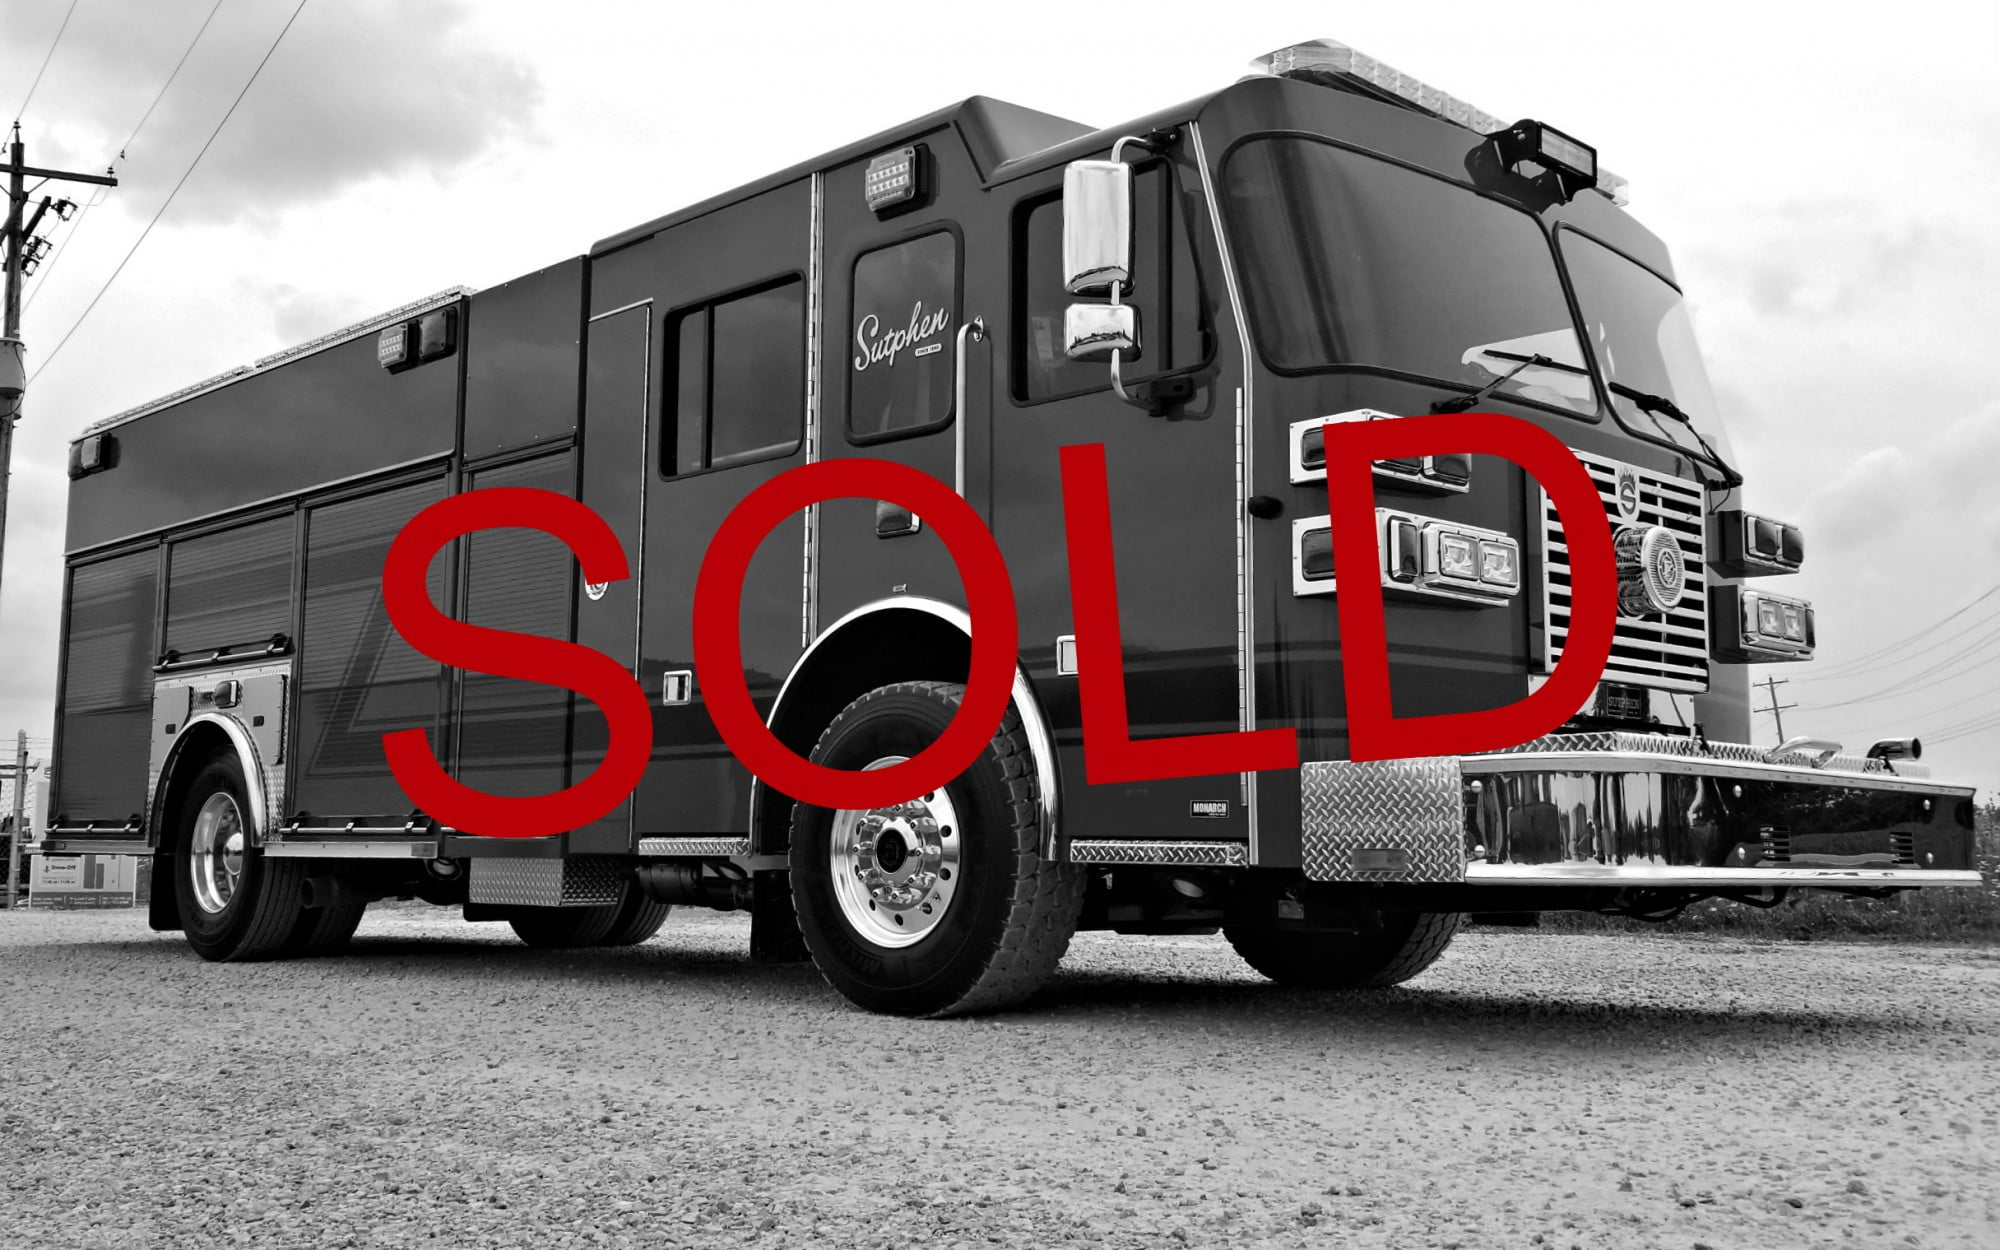 sold-demo-473-